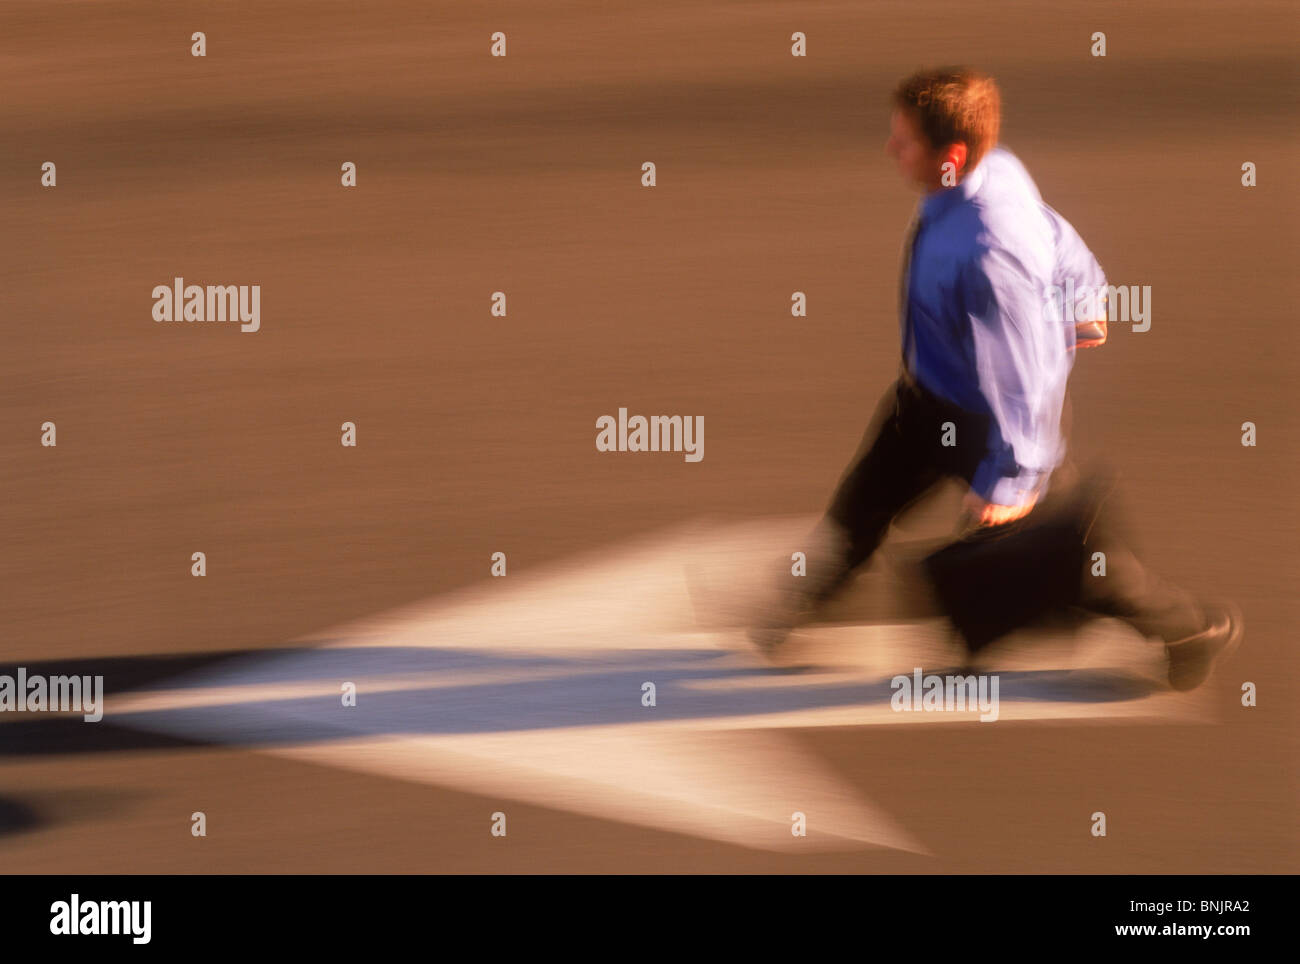 Businessman with briefcase hurrying to work over street direction arrow - Stock Image